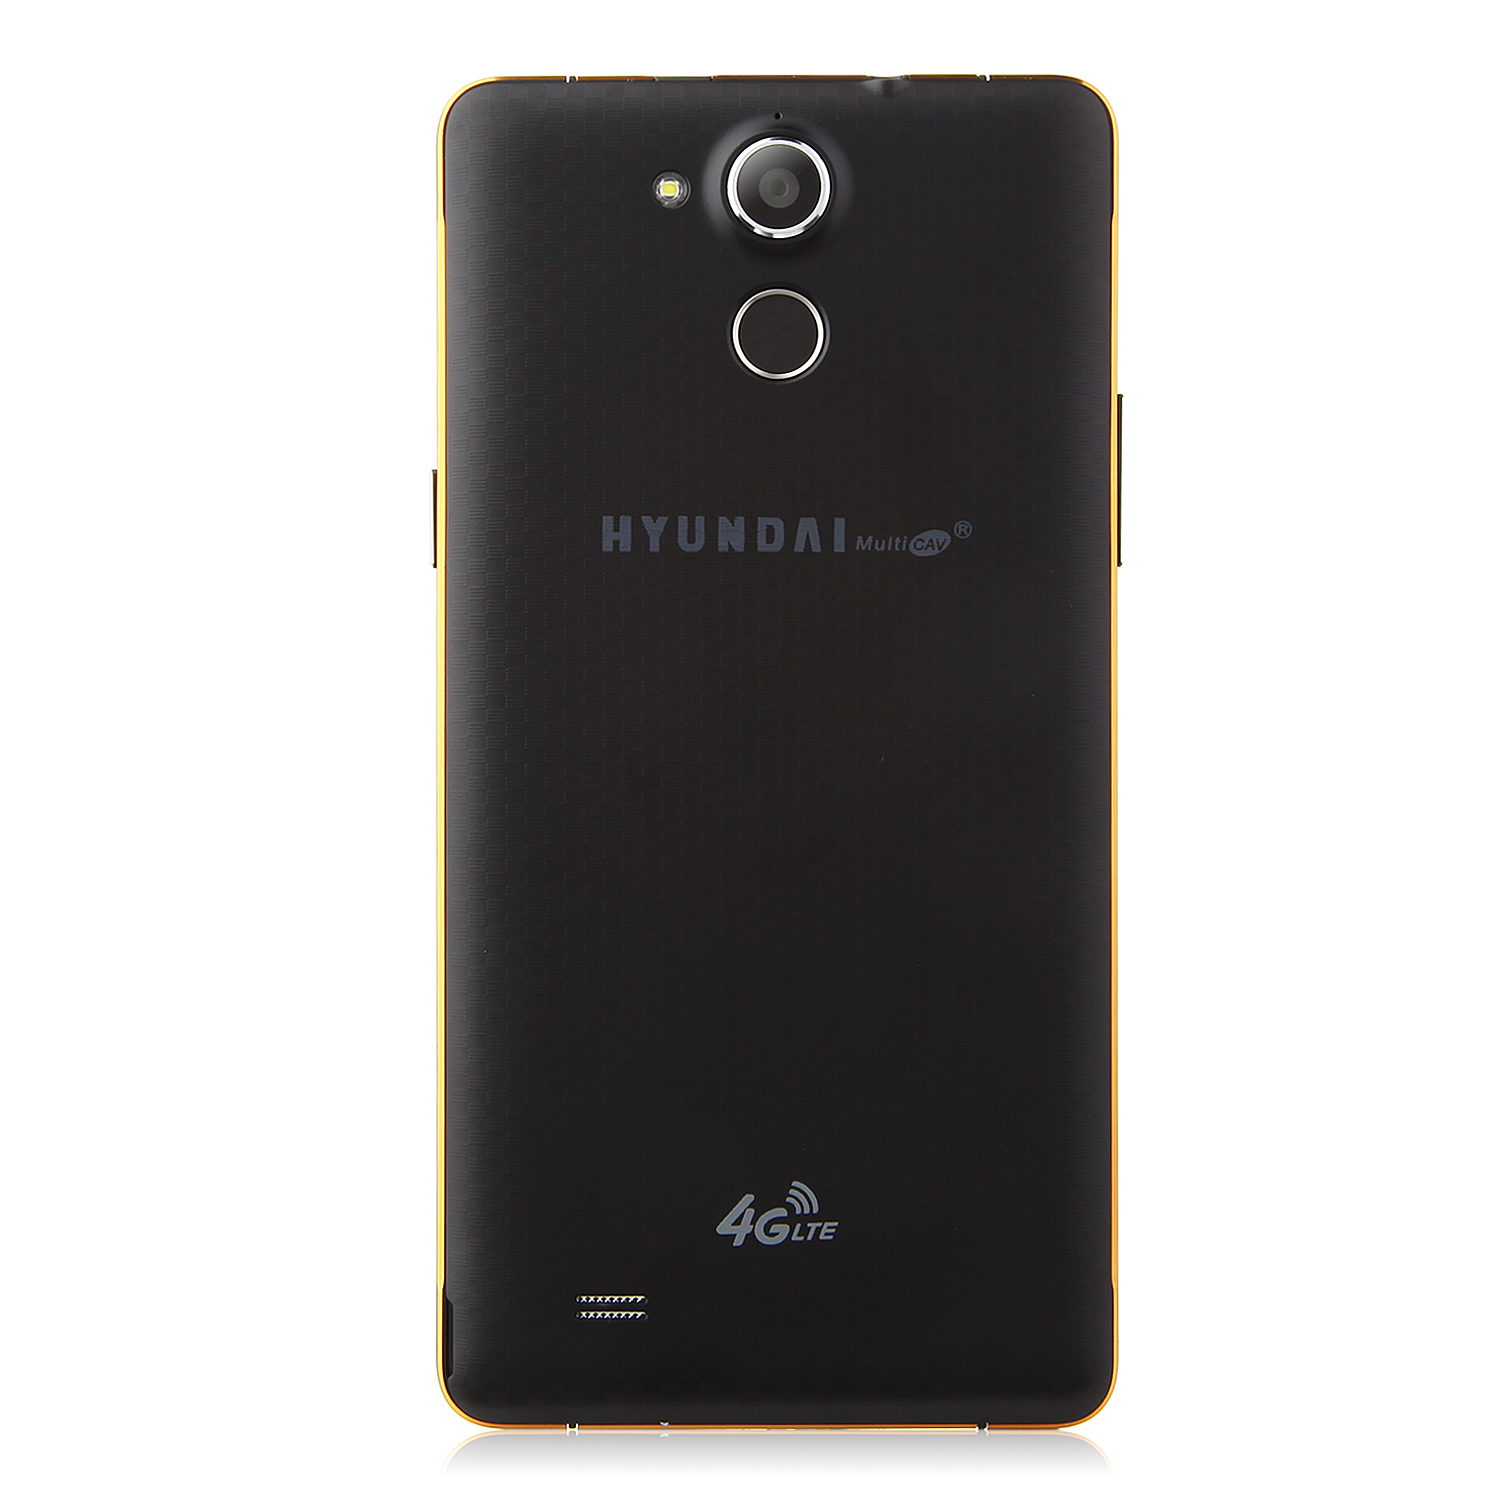 HYUNDAI Q6 4G Smartphone 5.5 Inch HD Screen 64bit MTK6732 Quad Core 3300mAh Black